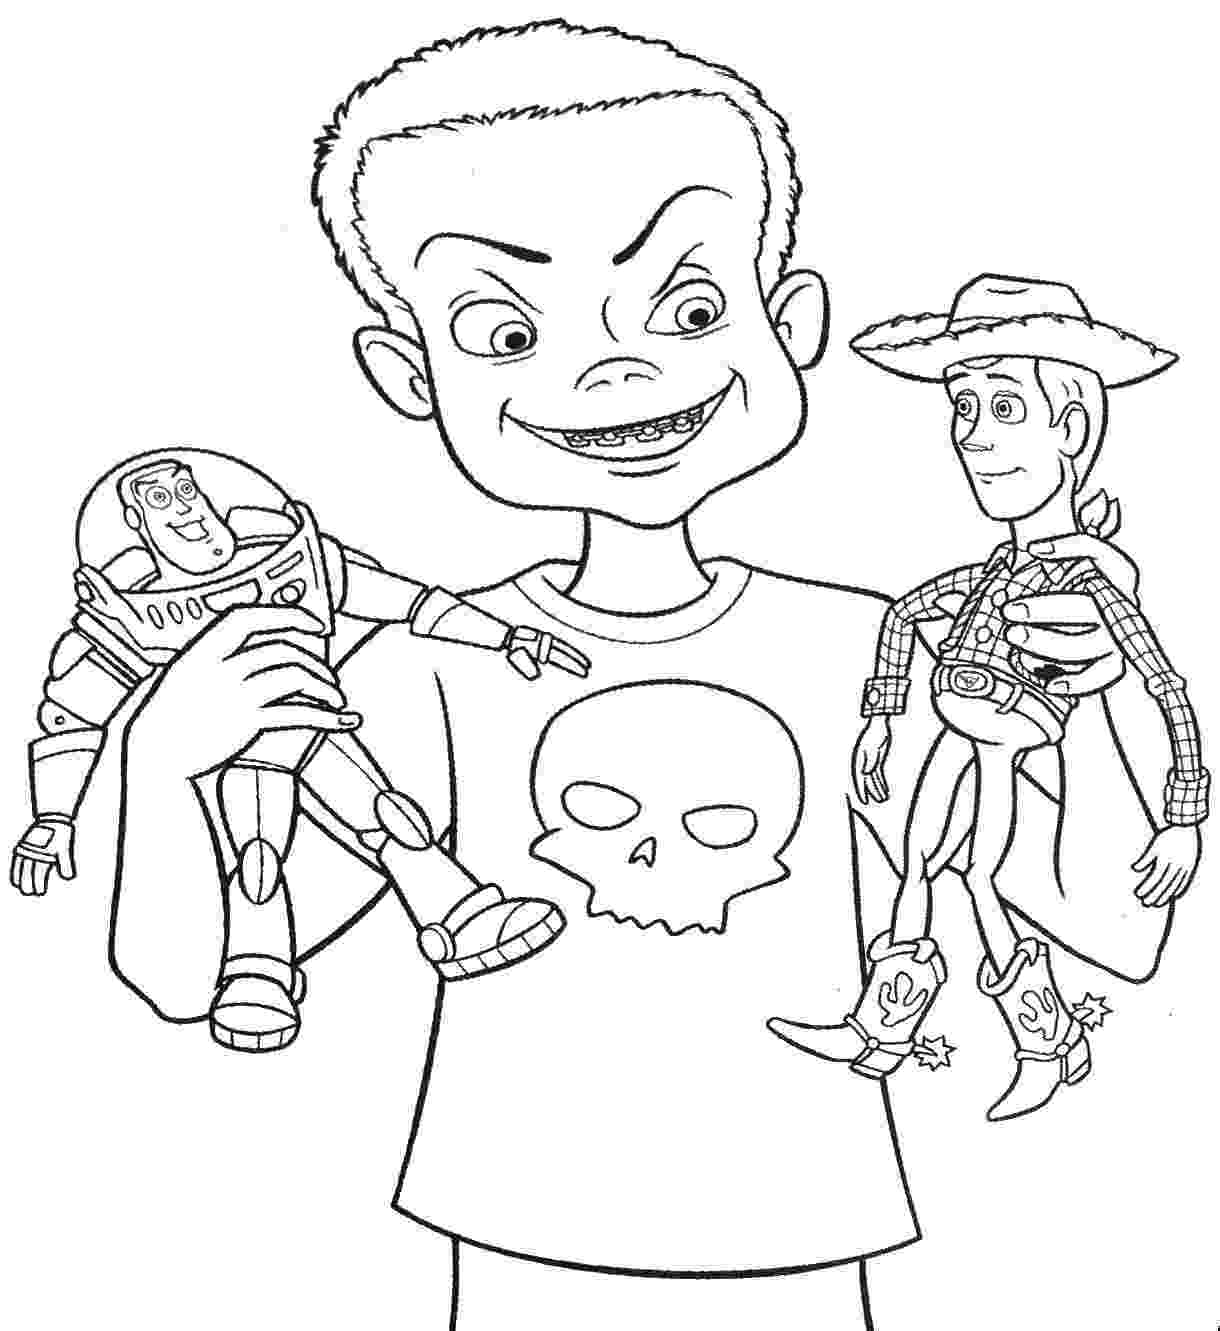 printable toy story 3 coloring pages disney toy story coloring pages getcoloringpagescom pages printable 3 story coloring toy